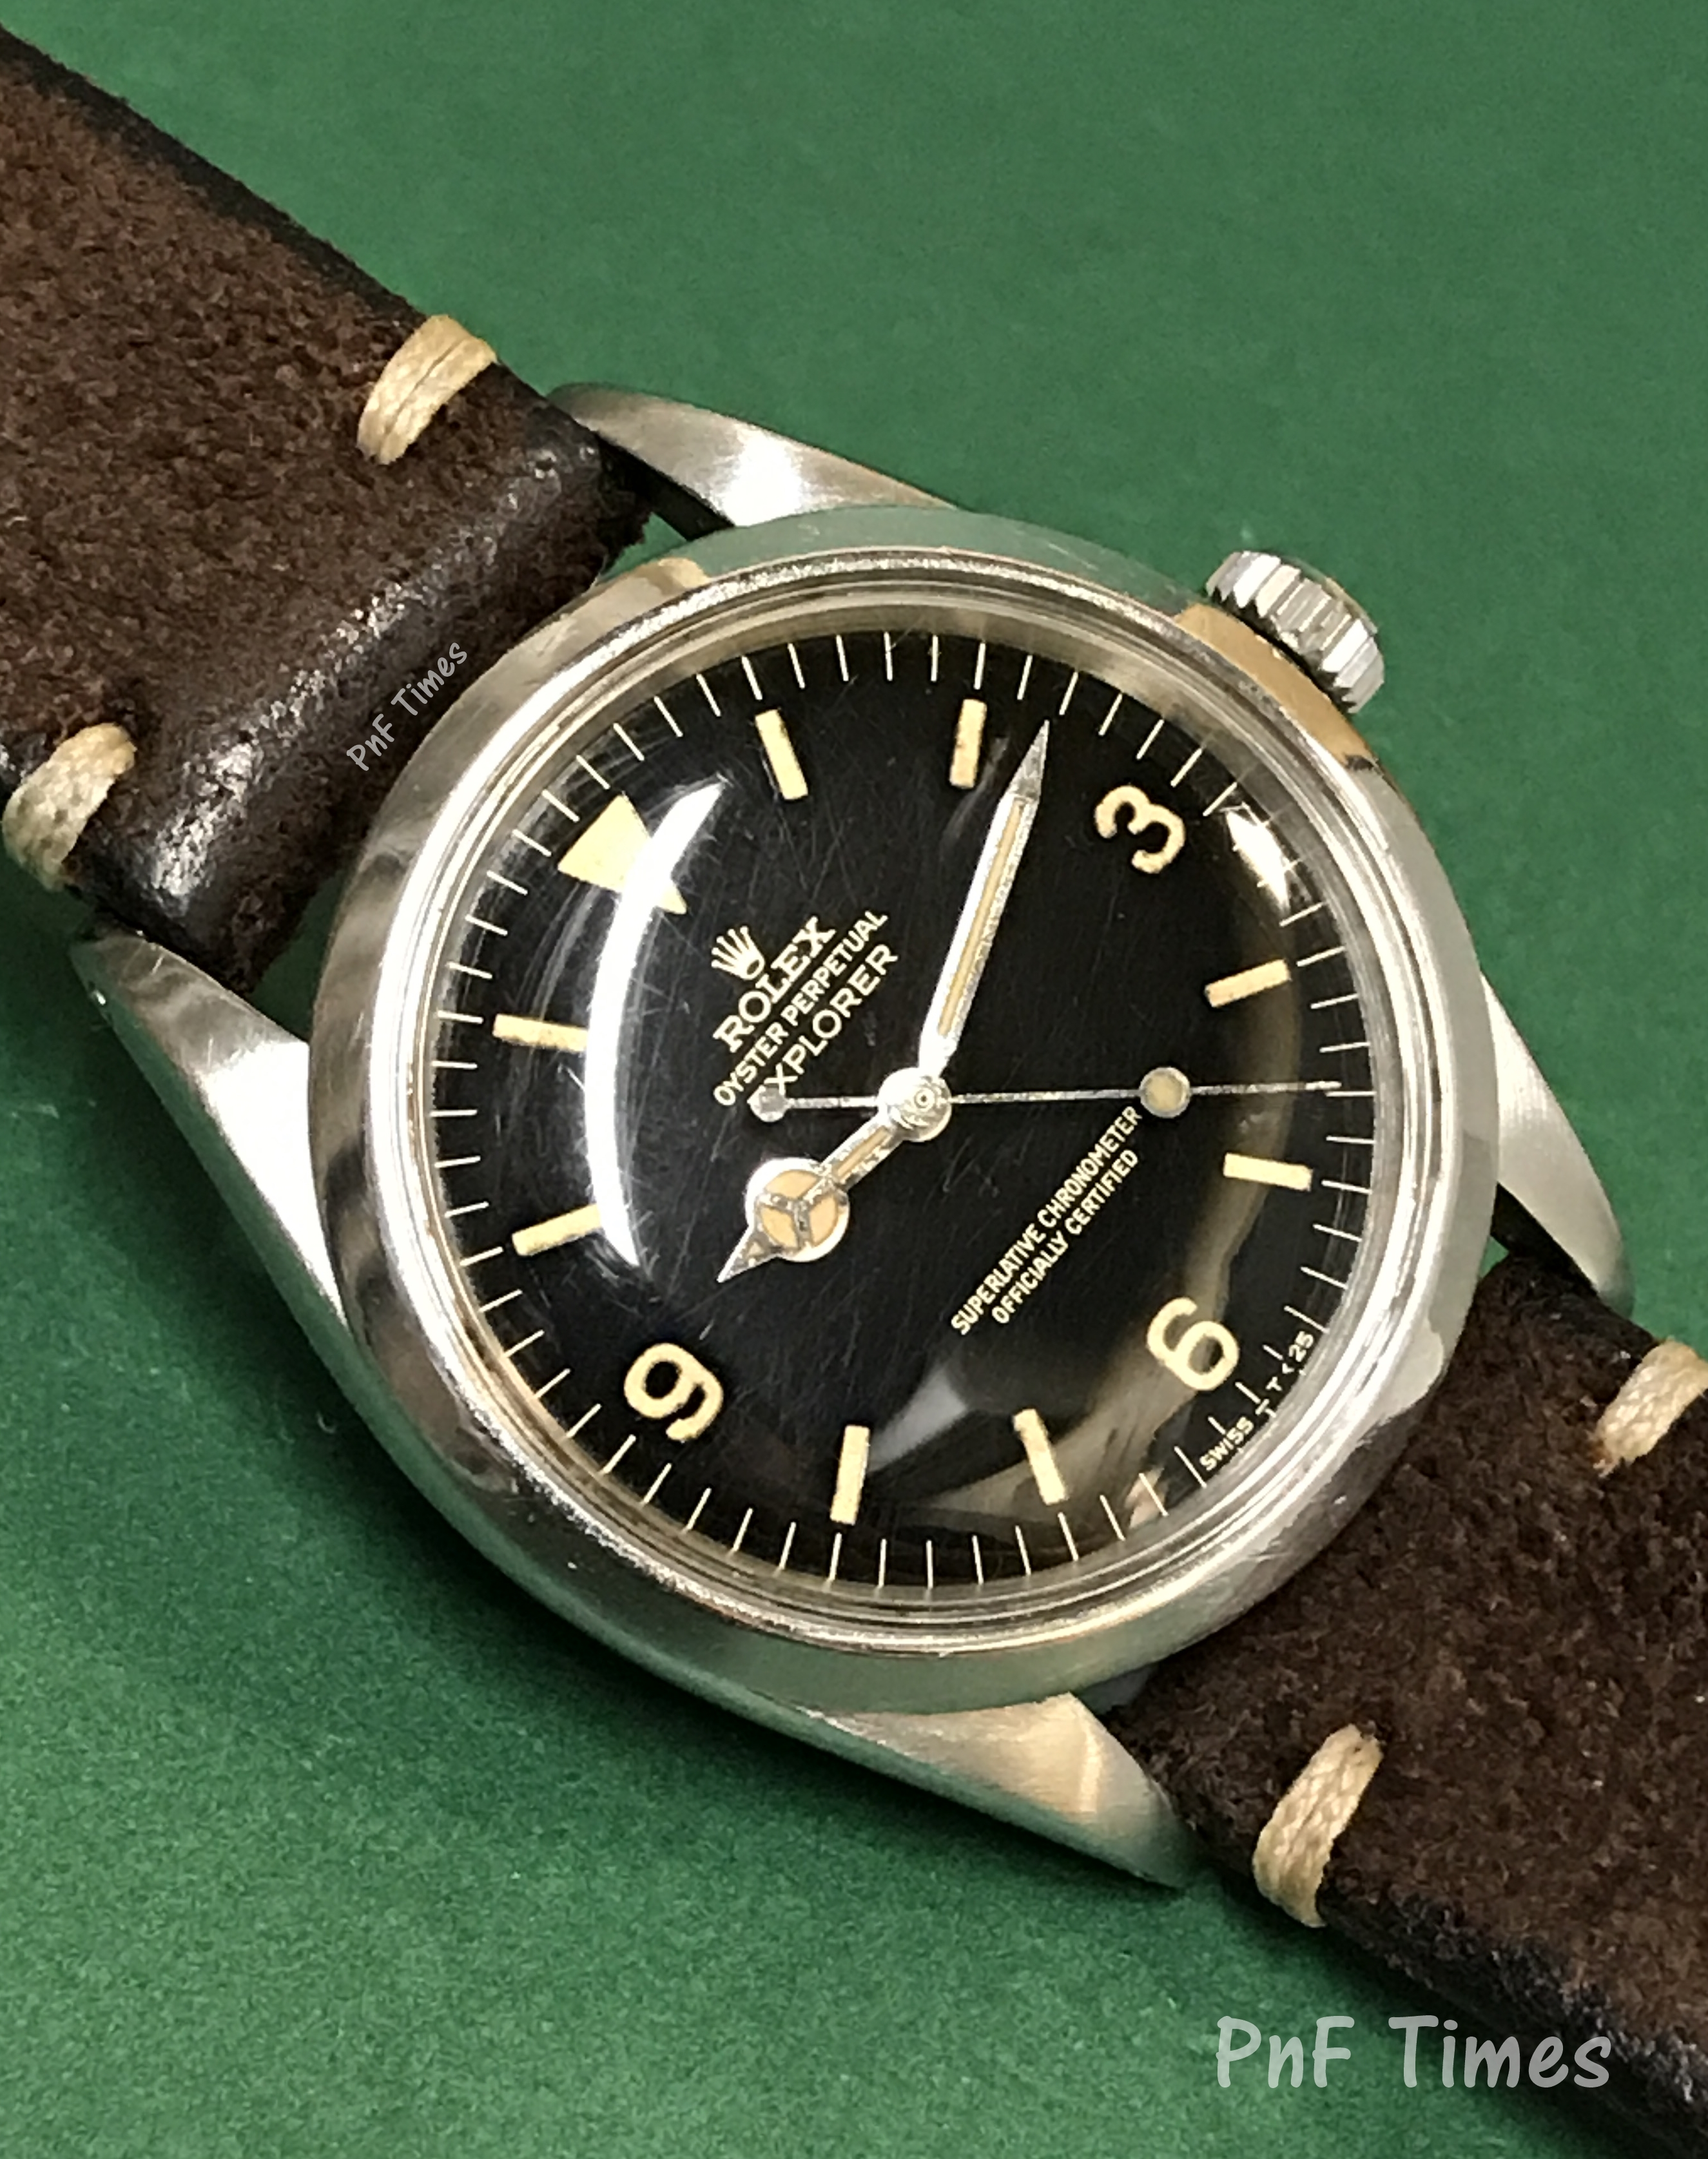 Rolex 1016 Oyster Perpetual Explorer Black Gilt Dial with